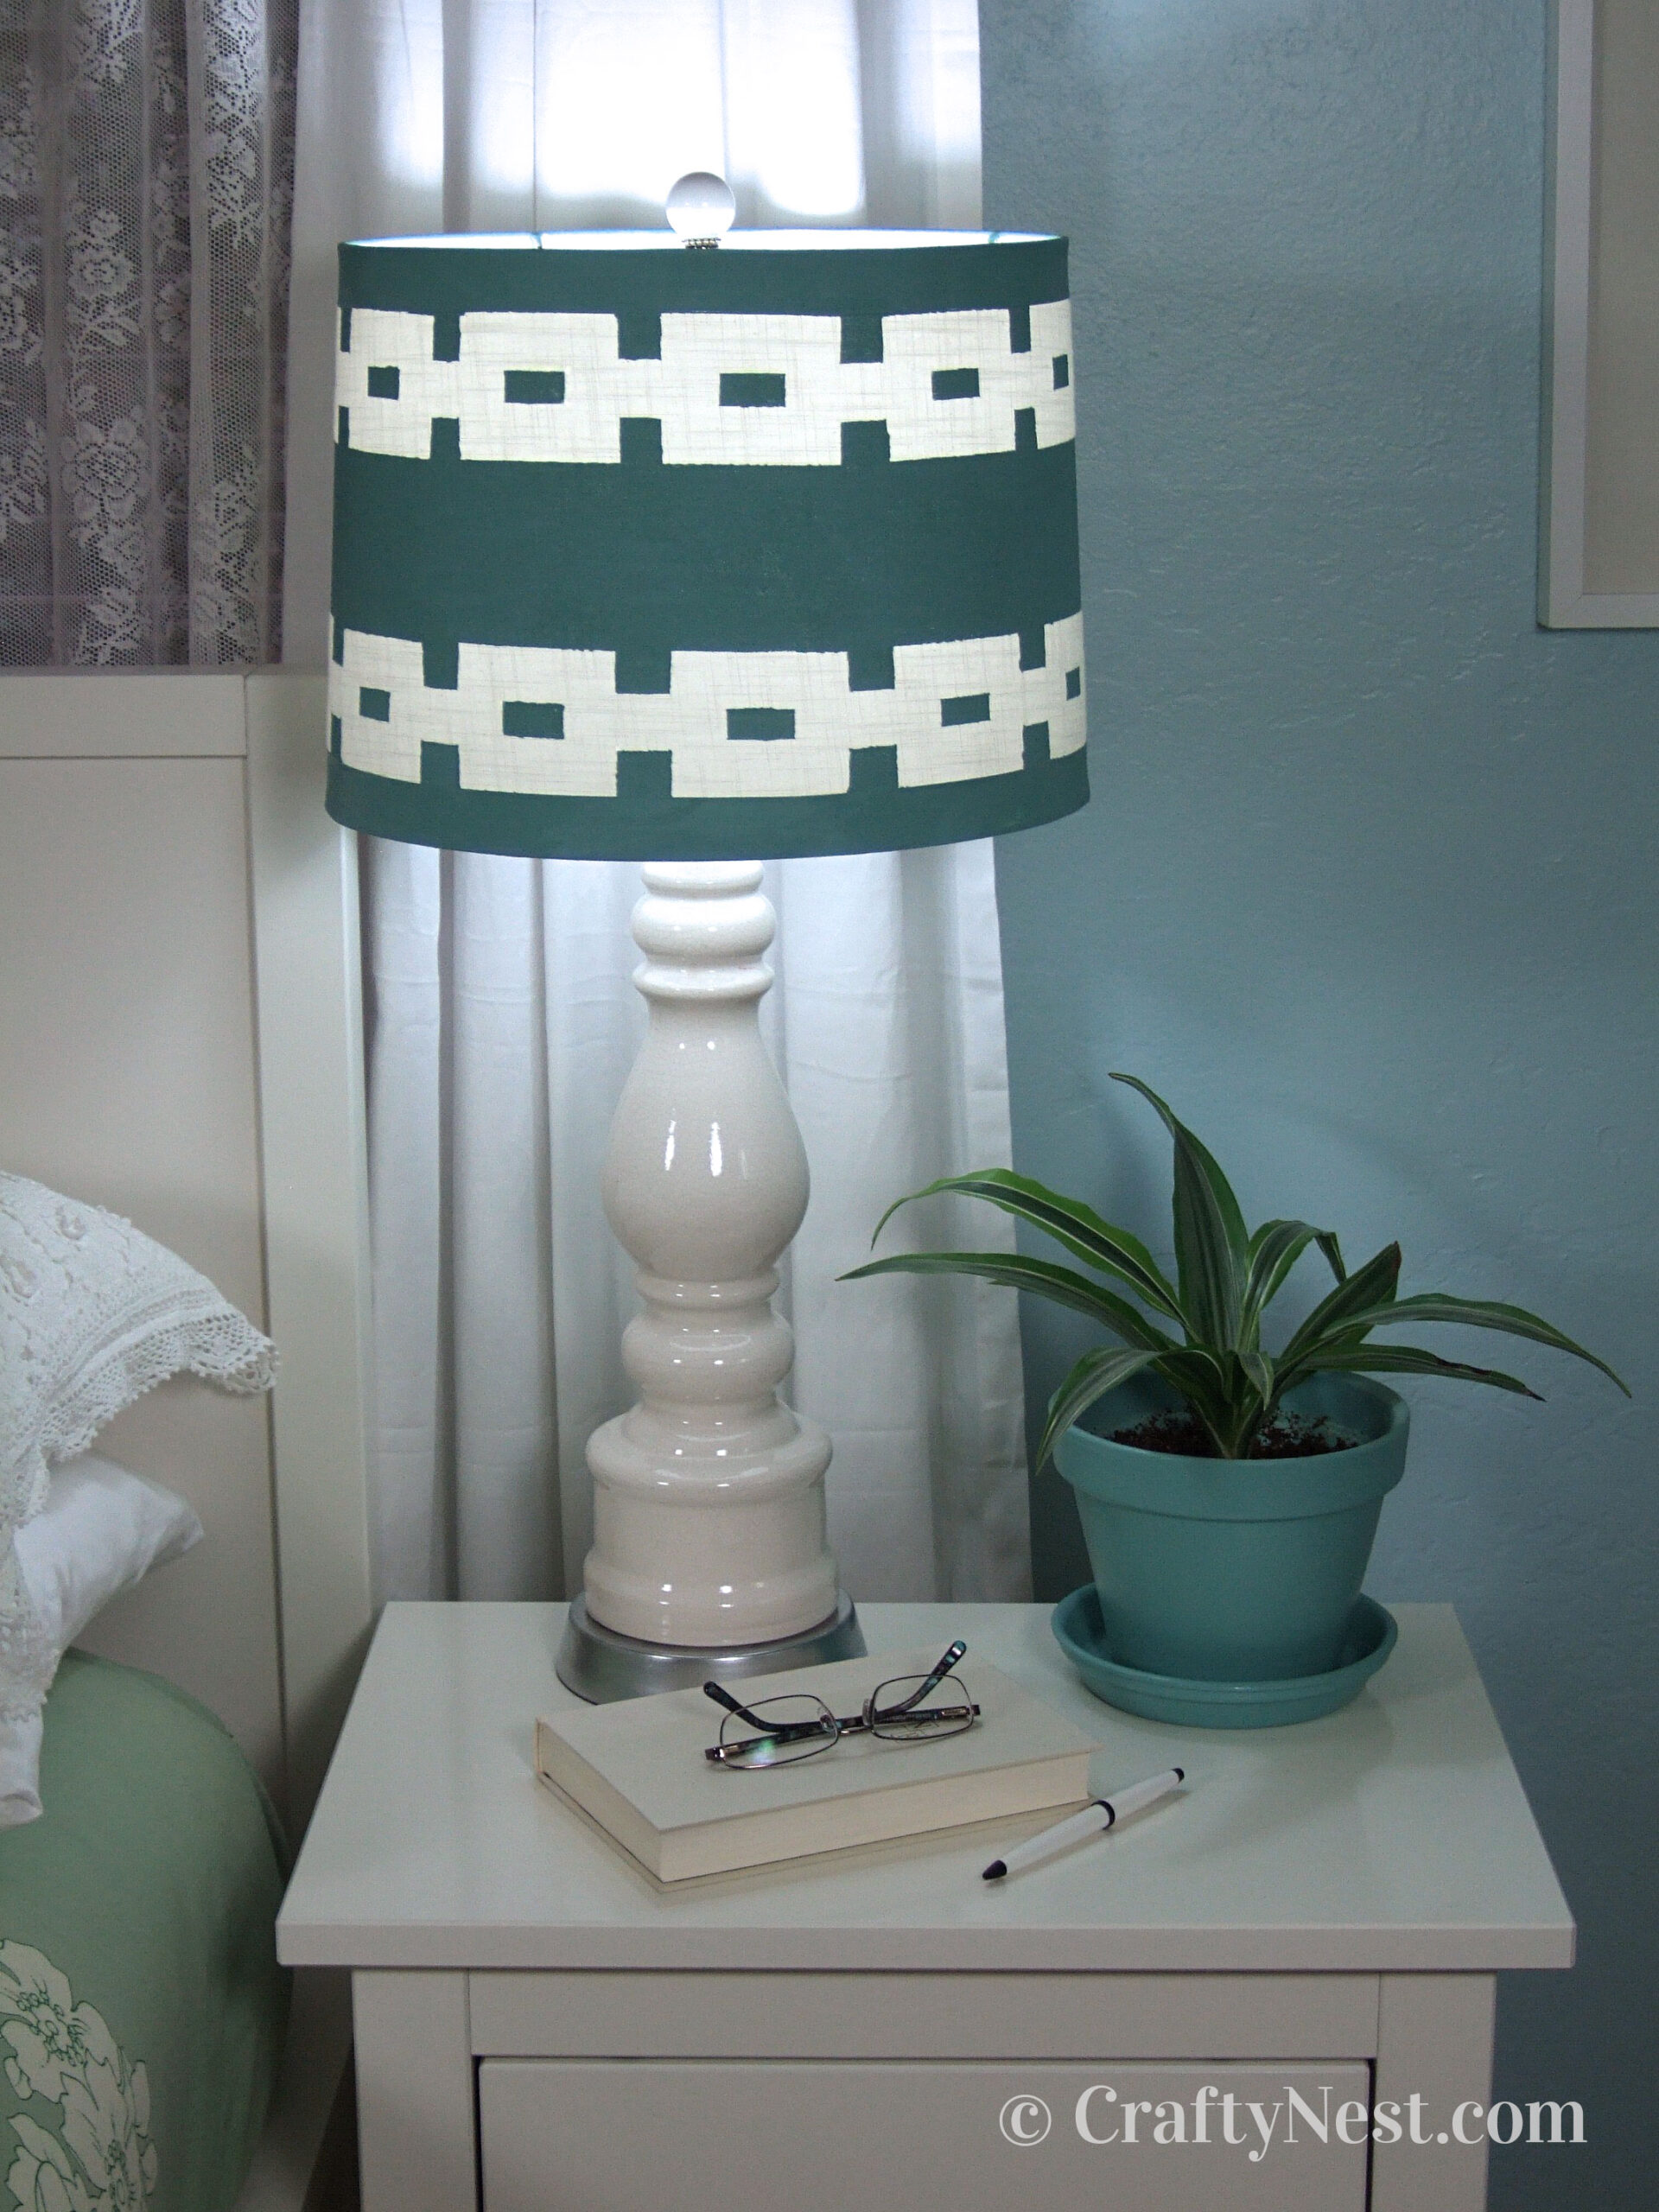 Painted lampshade, lamp with light on, and finial, photo